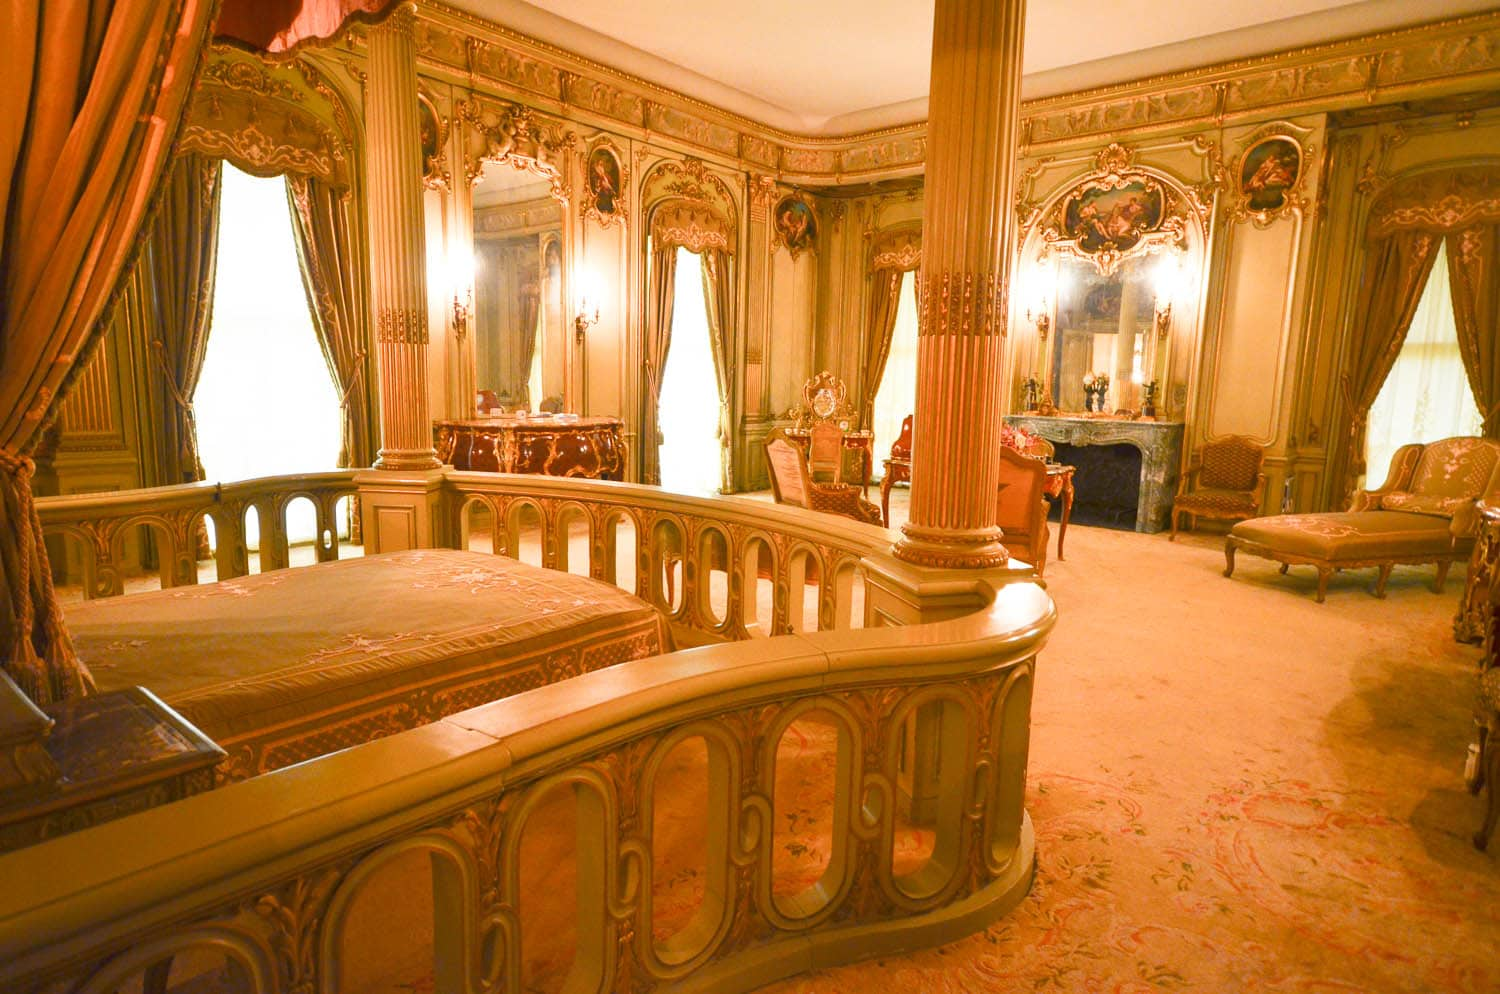 Vanderbilt mansion bedroom hyde park ny albany kid for 10 bedroom mansion